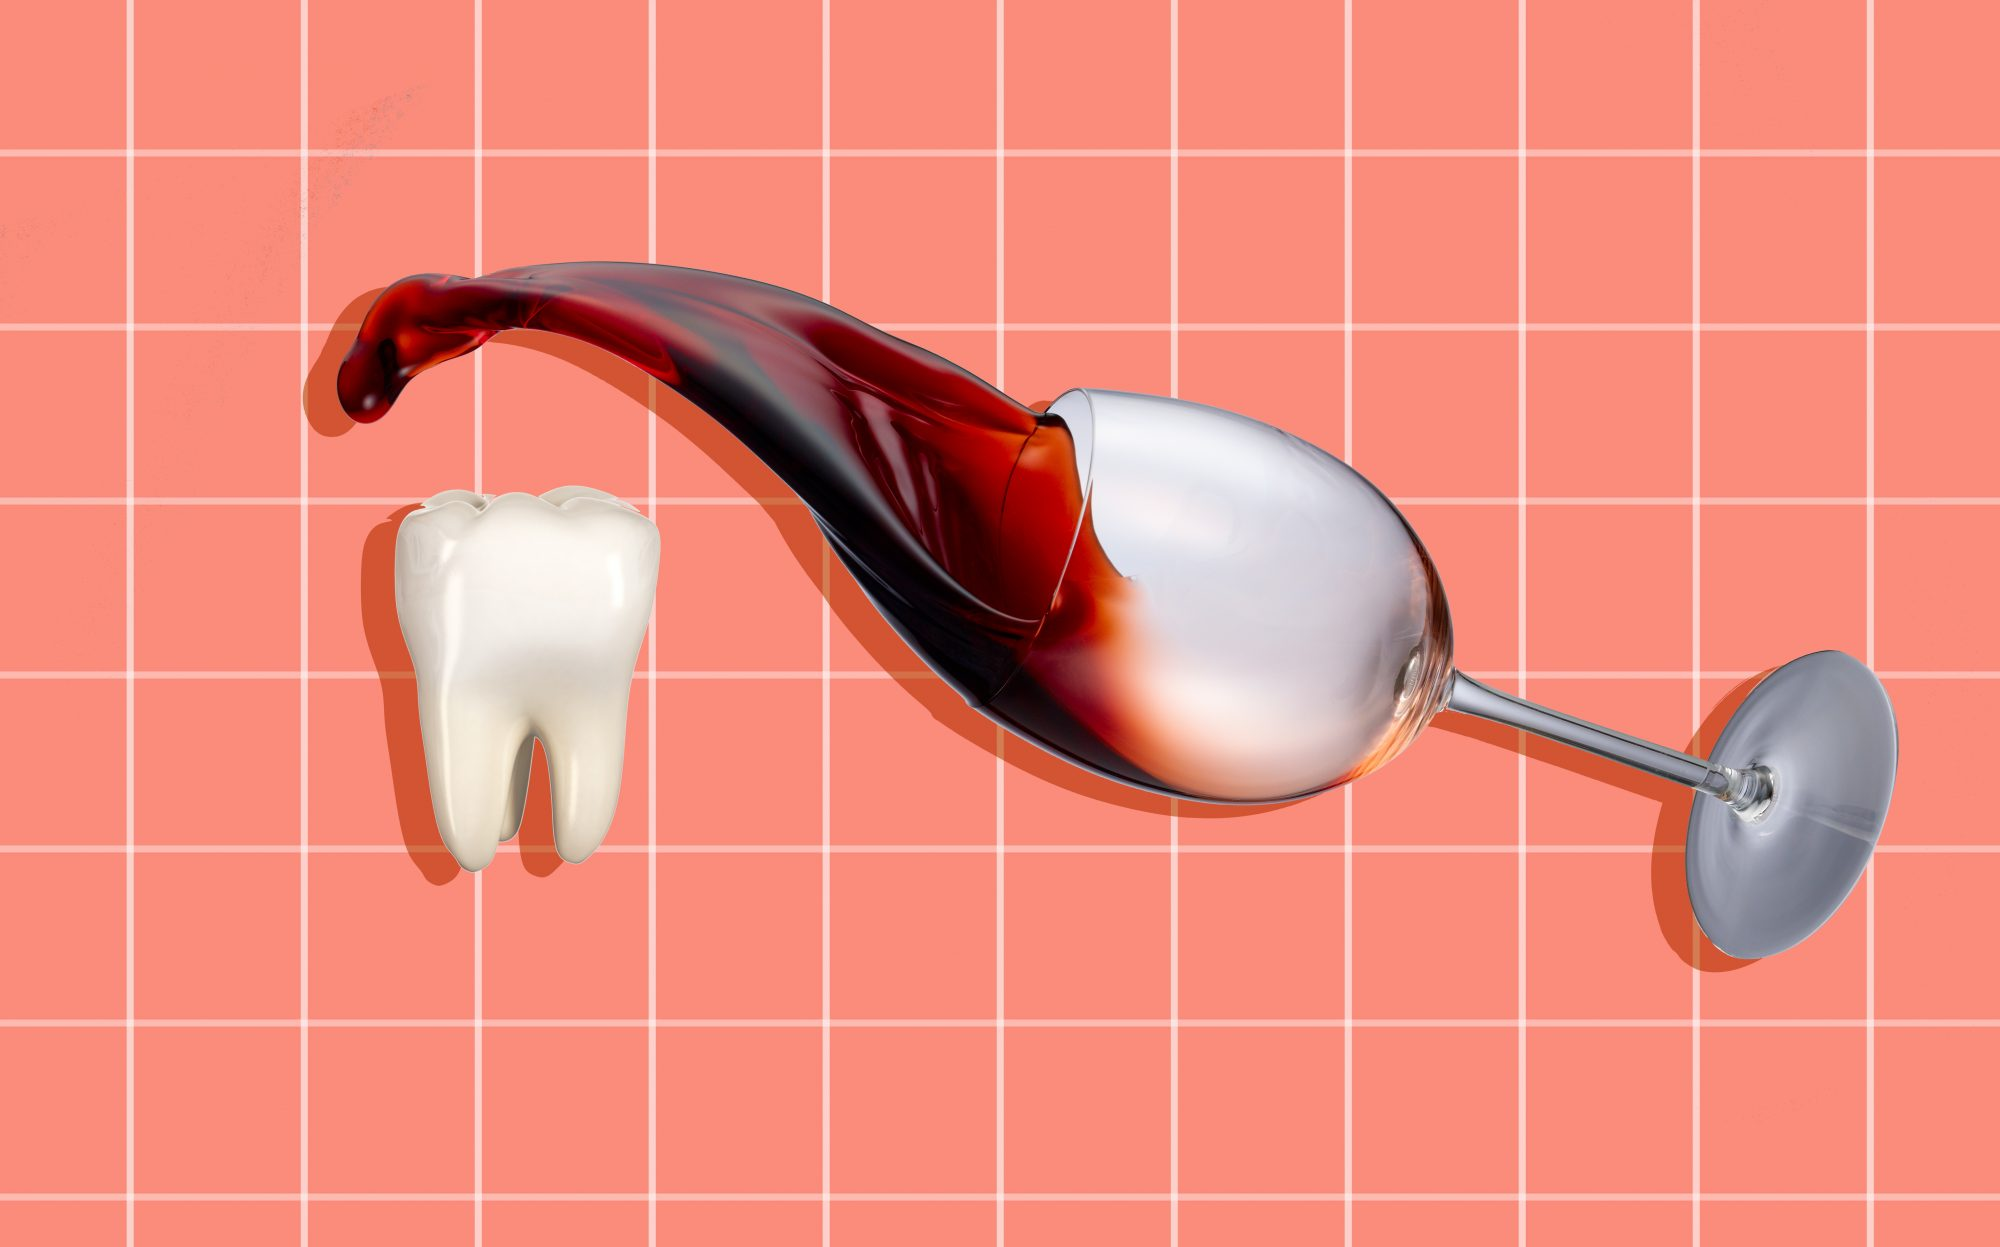 7 Clever Tricks for Keeping Your Teeth Free From Wine Stains, According to a Dentist